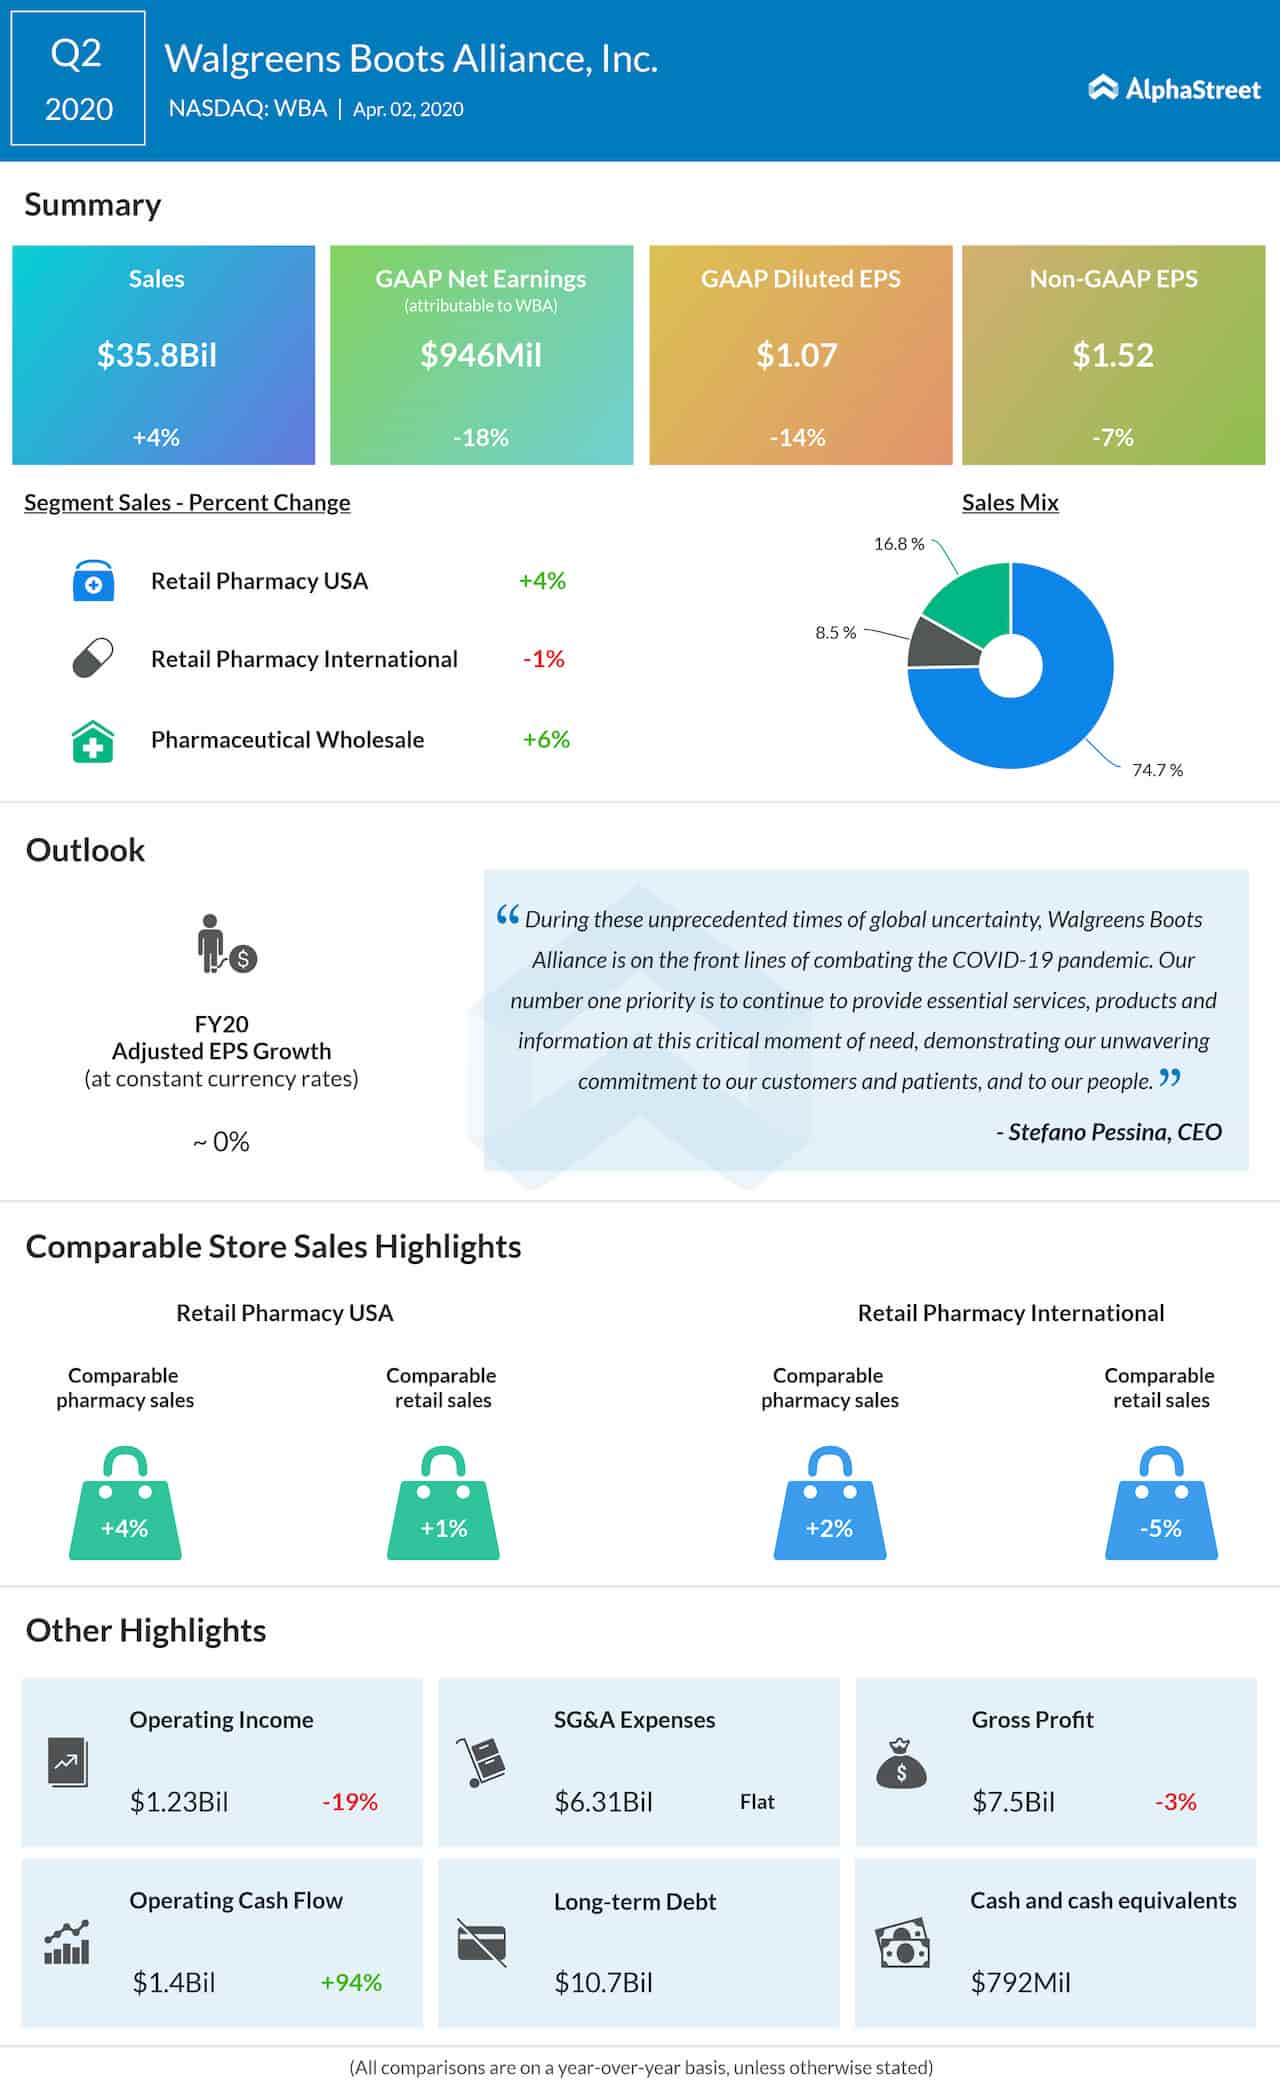 Walgreens Boots Alliance Q2 2020 earnings infographic